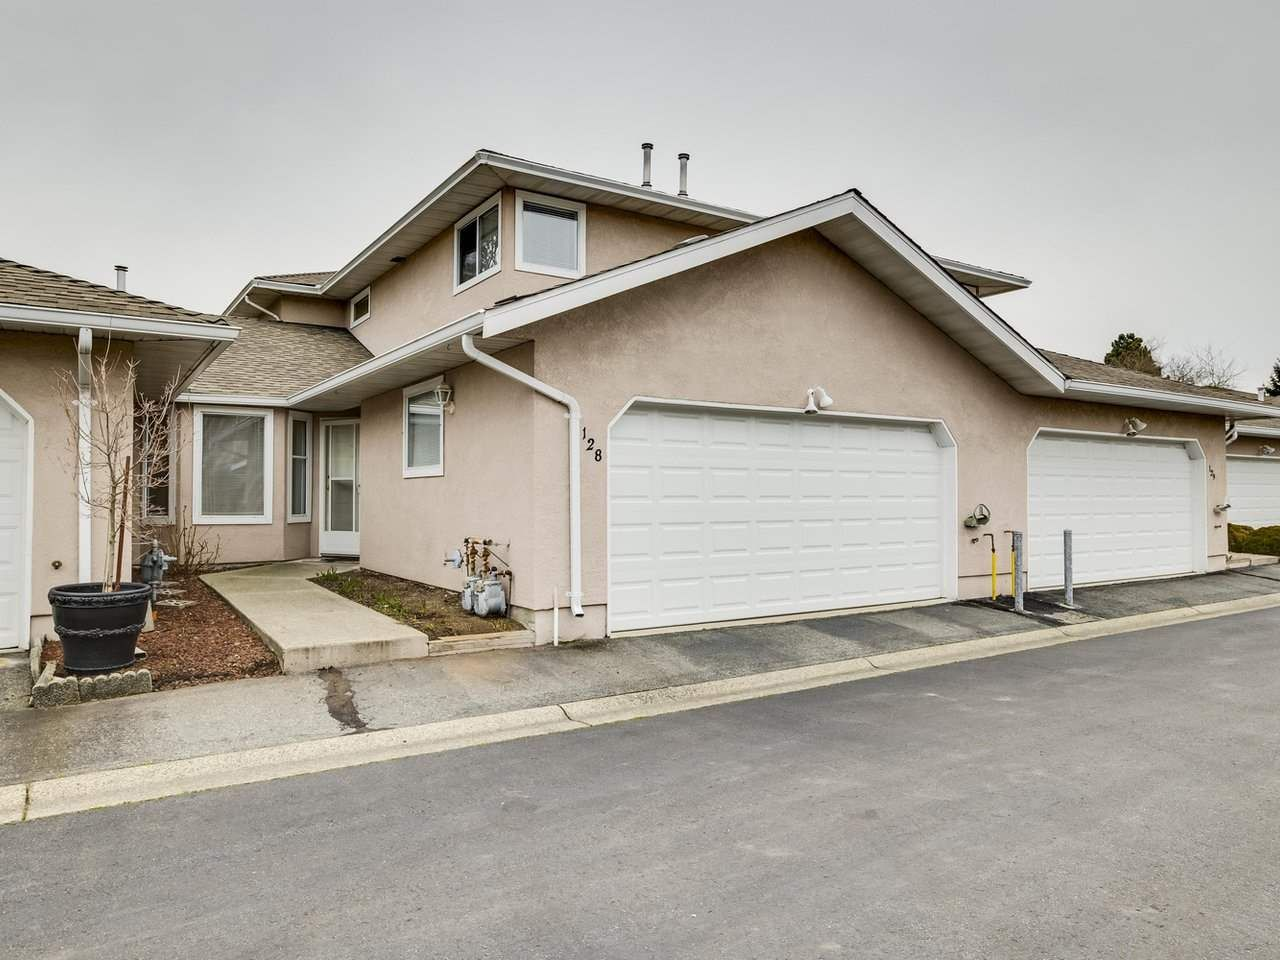 Main Photo: 128 15501 89A AVENUE in Surrey: Fleetwood Tynehead Townhouse for sale : MLS®# R2540692